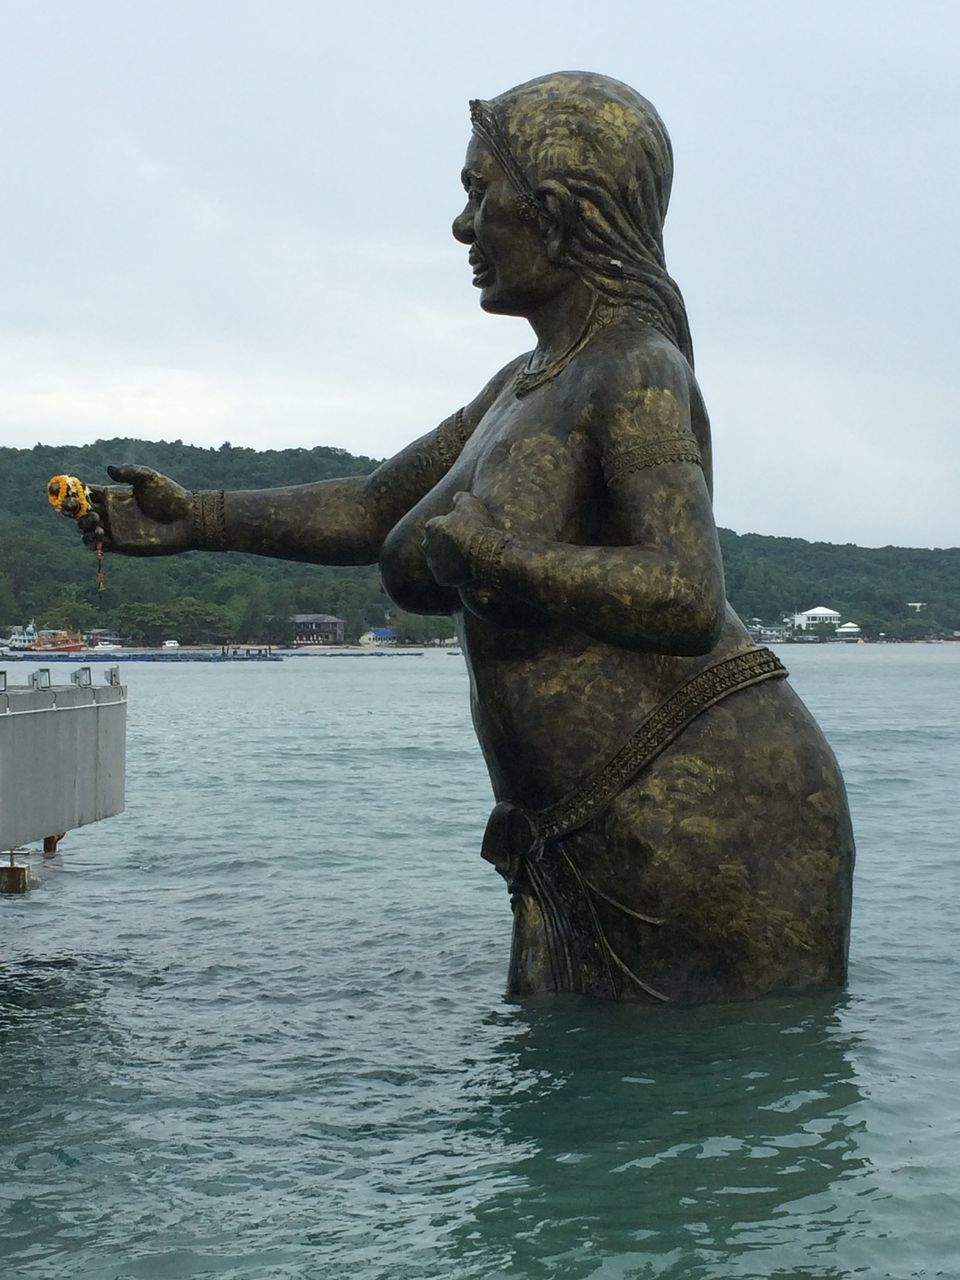 statue, sculpture, art and craft, human representation, water, day, outdoors, waterfront, no people, sky, nature, beauty in nature